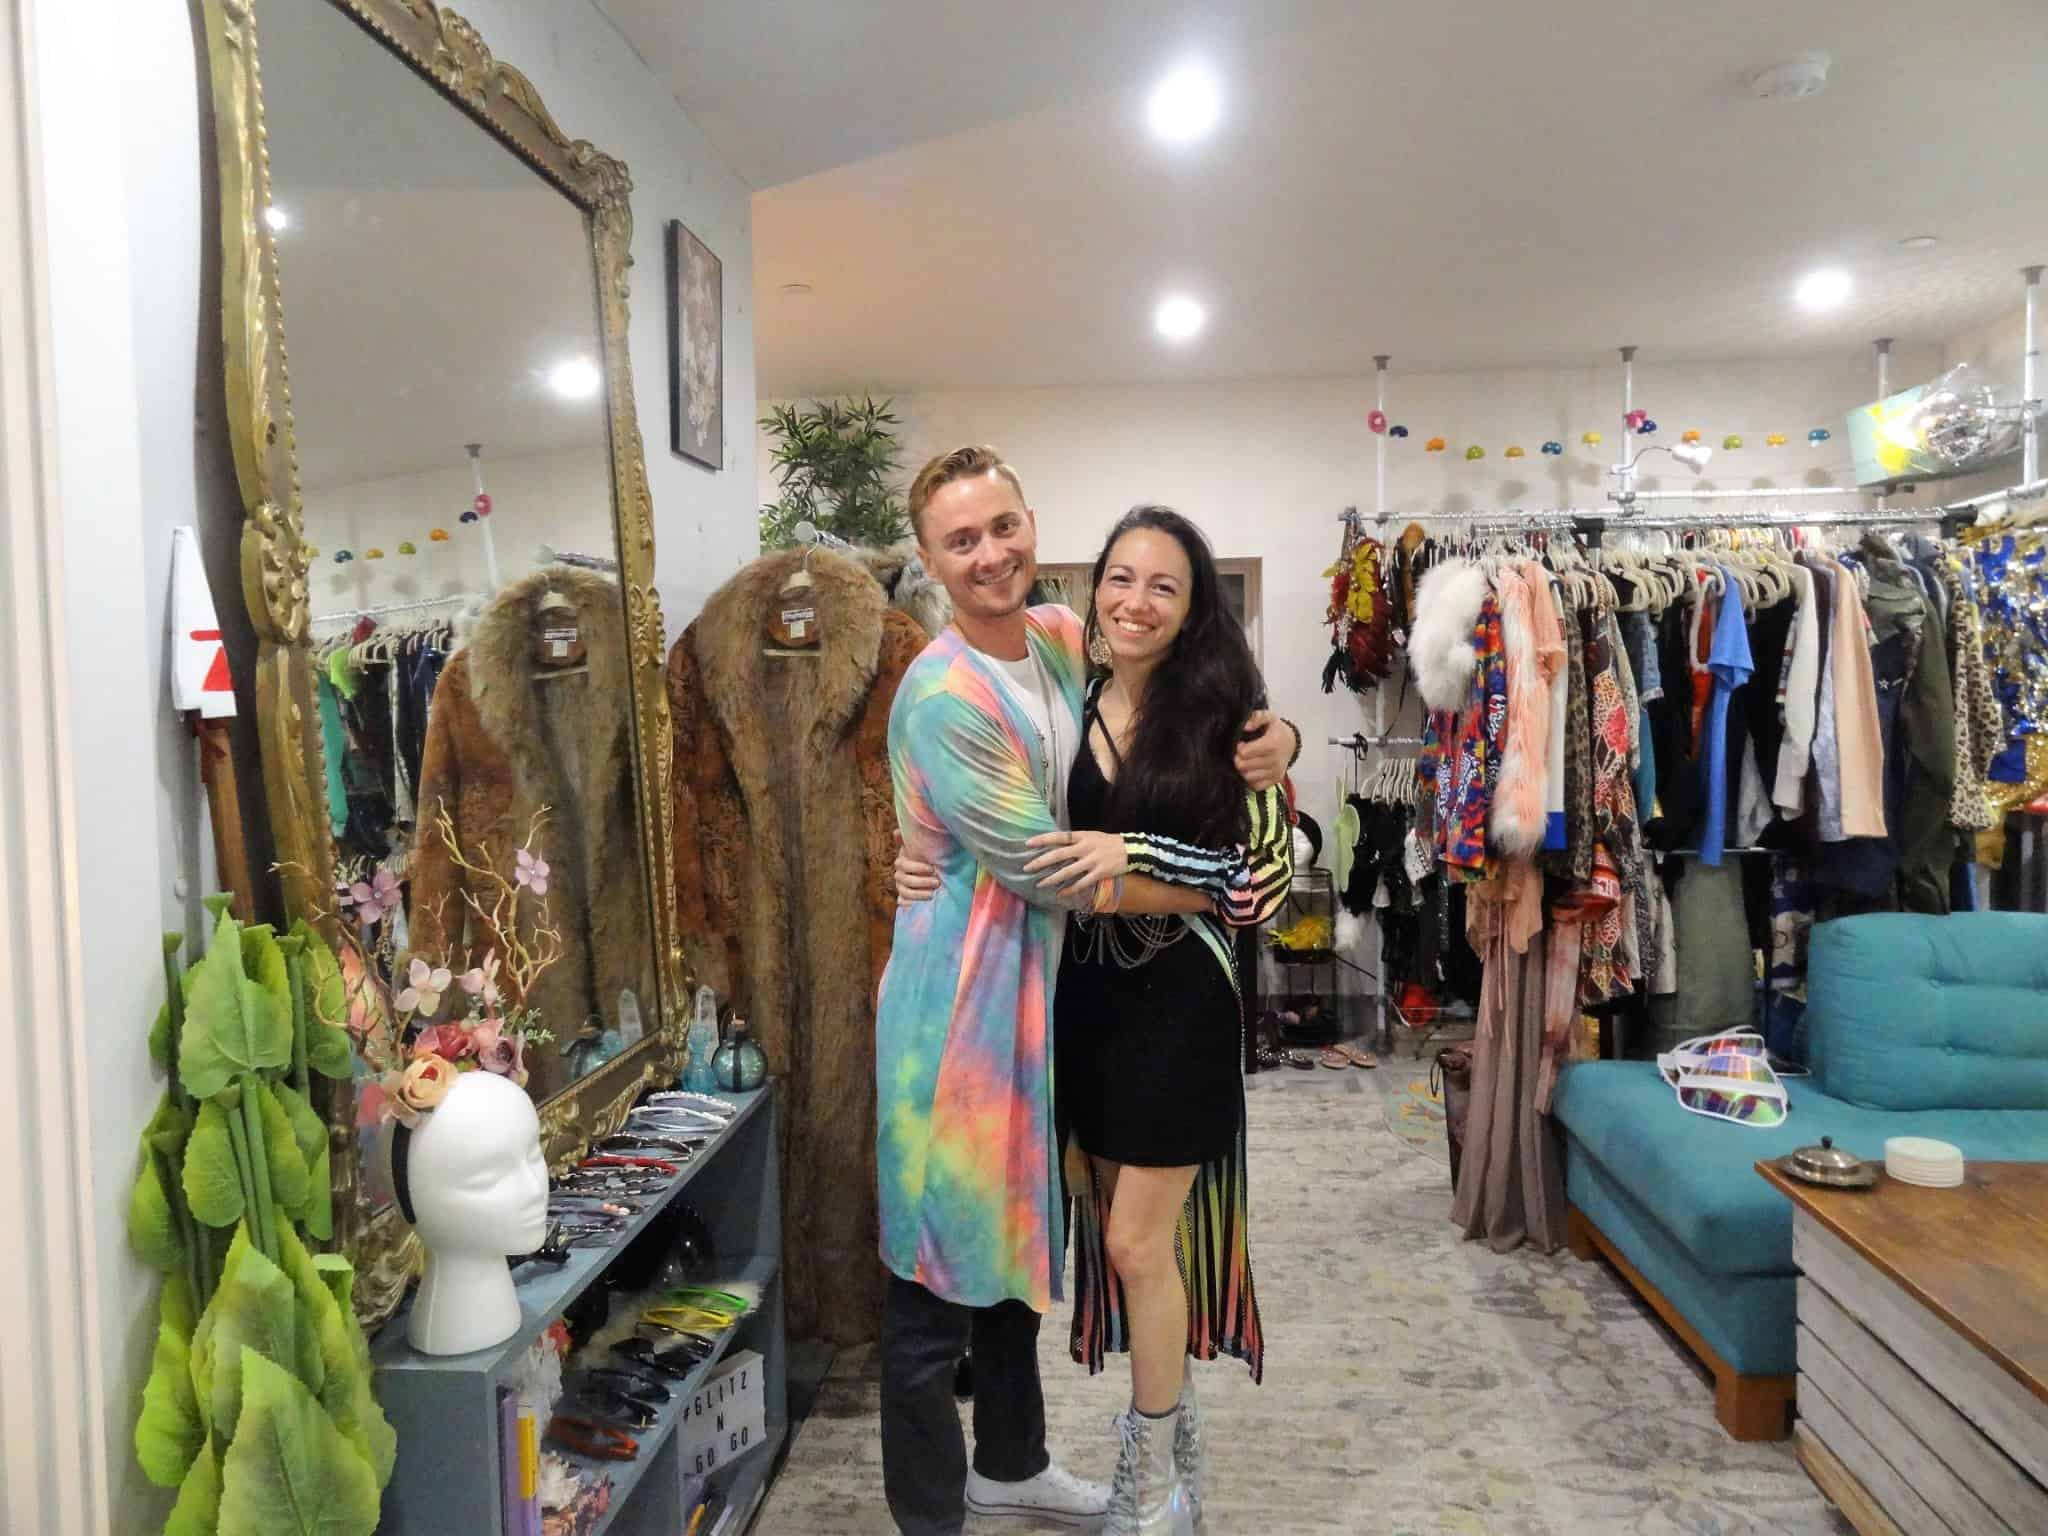 Bushwick's New Rental Wardrobe, the Costume Closet, Offers 'Festival-inspired' Costumes for Any Occasion